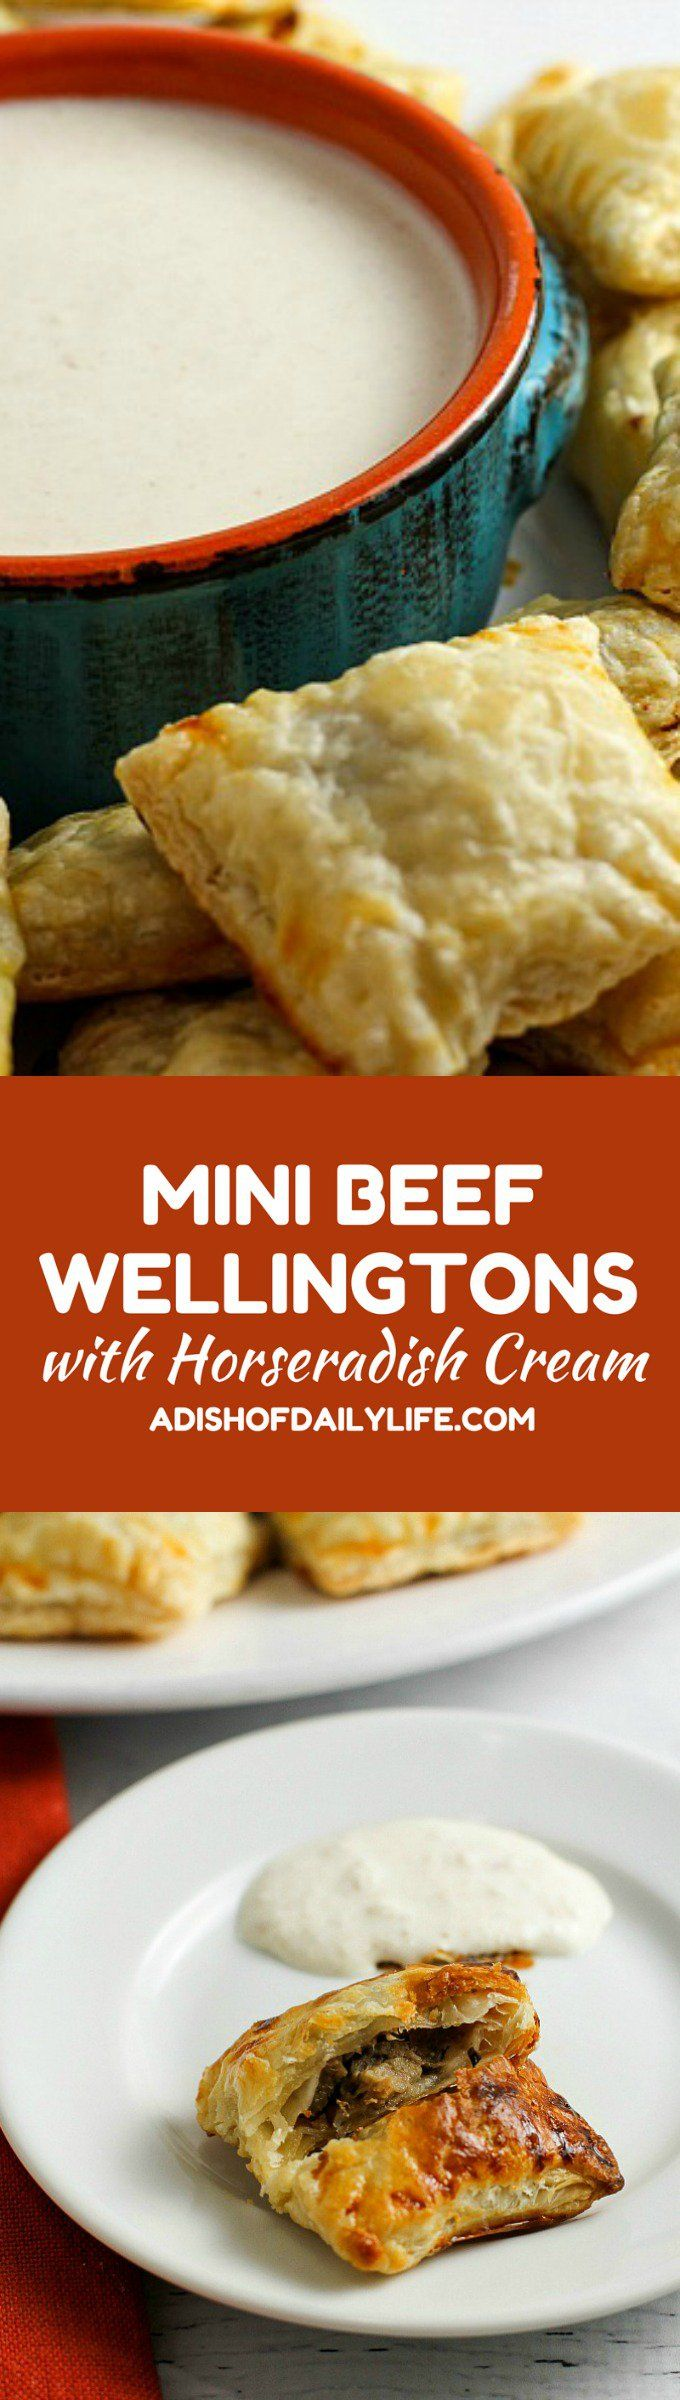 These Mini Beef Wellingtons with Horseradish Cream are an elegant appetizer, perfect for special occasions! Your game day crowd will love them too though! One of my favorite appetizers EVER! http://www.adishofdailylife.com/2017/02/mini-beef-wellingtons-with-horseradish-cream/